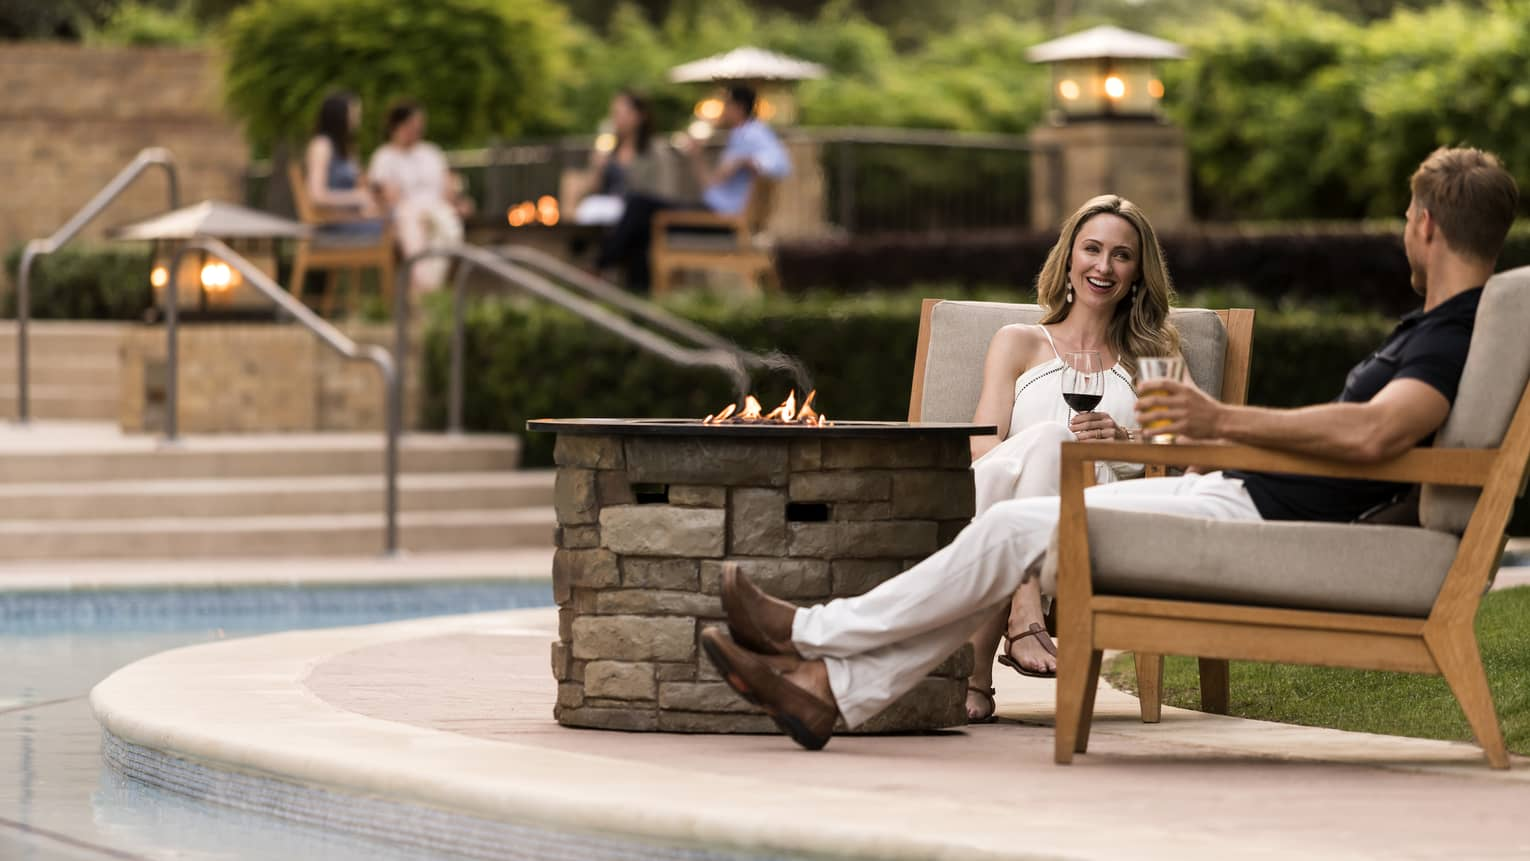 People sitting outside around a fire pit near a pool drinking wine.